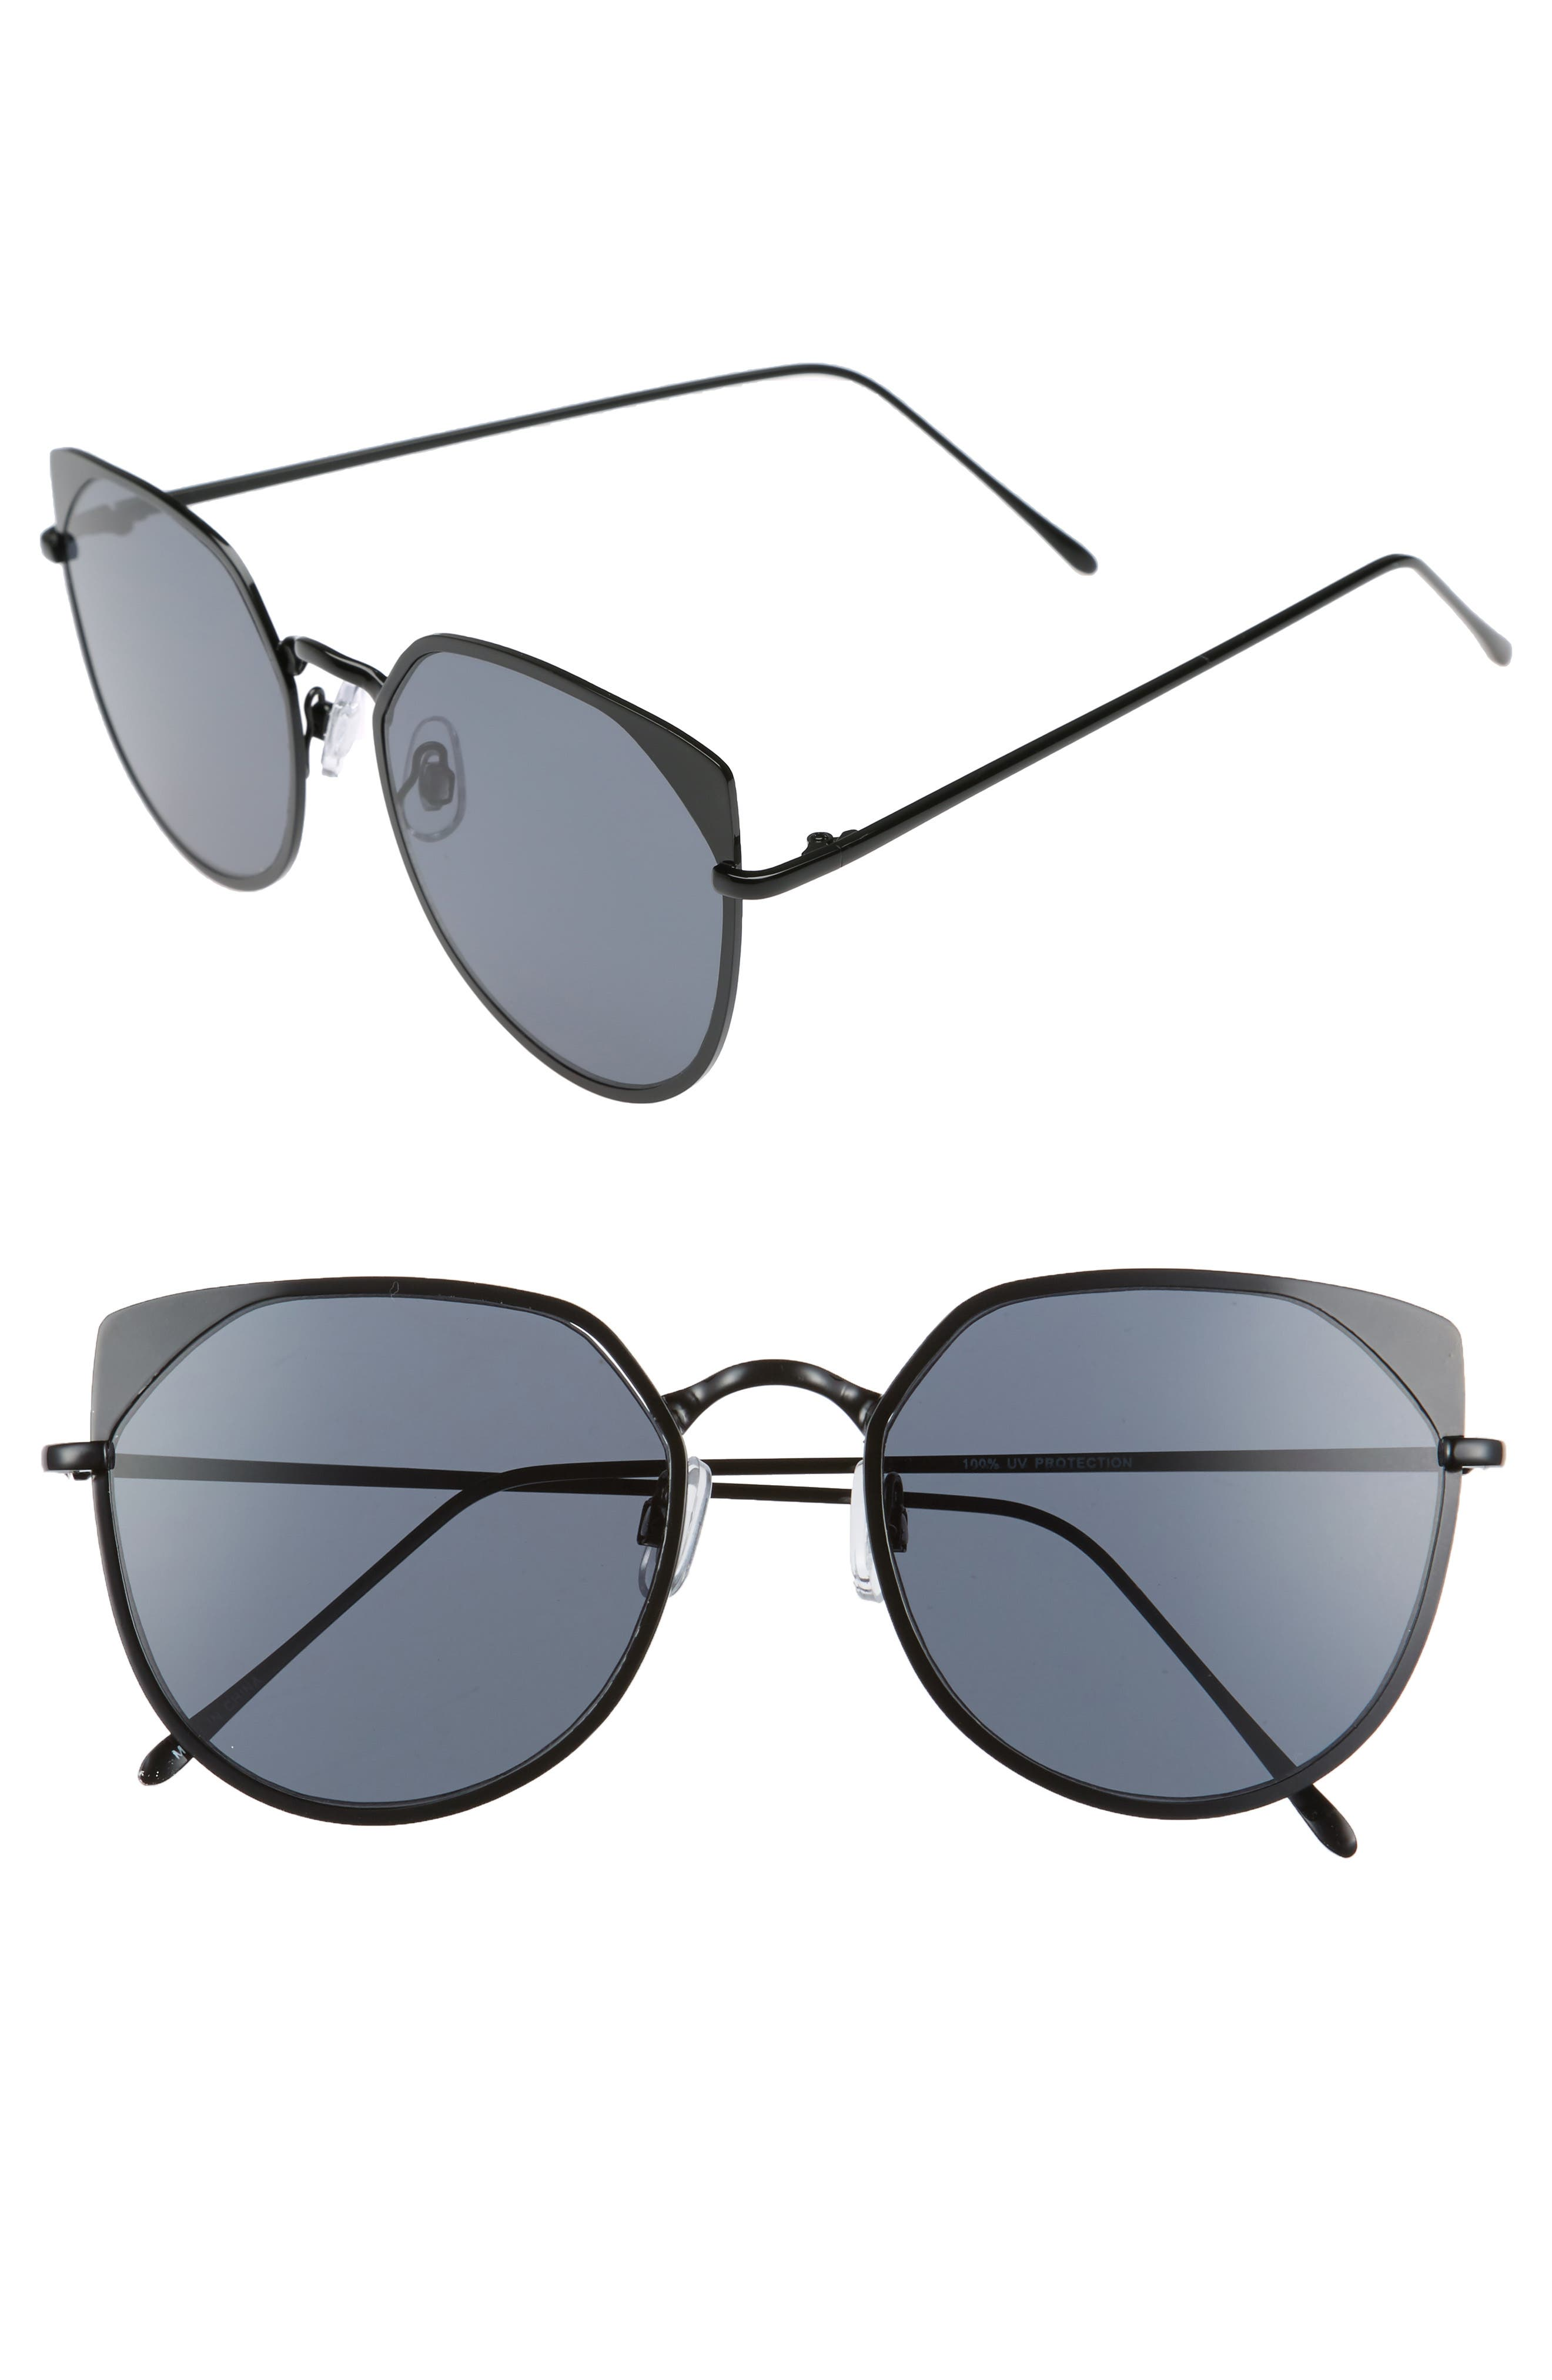 55mm Mirrored Cat Eye Sunglasses,                         Main,                         color, 005